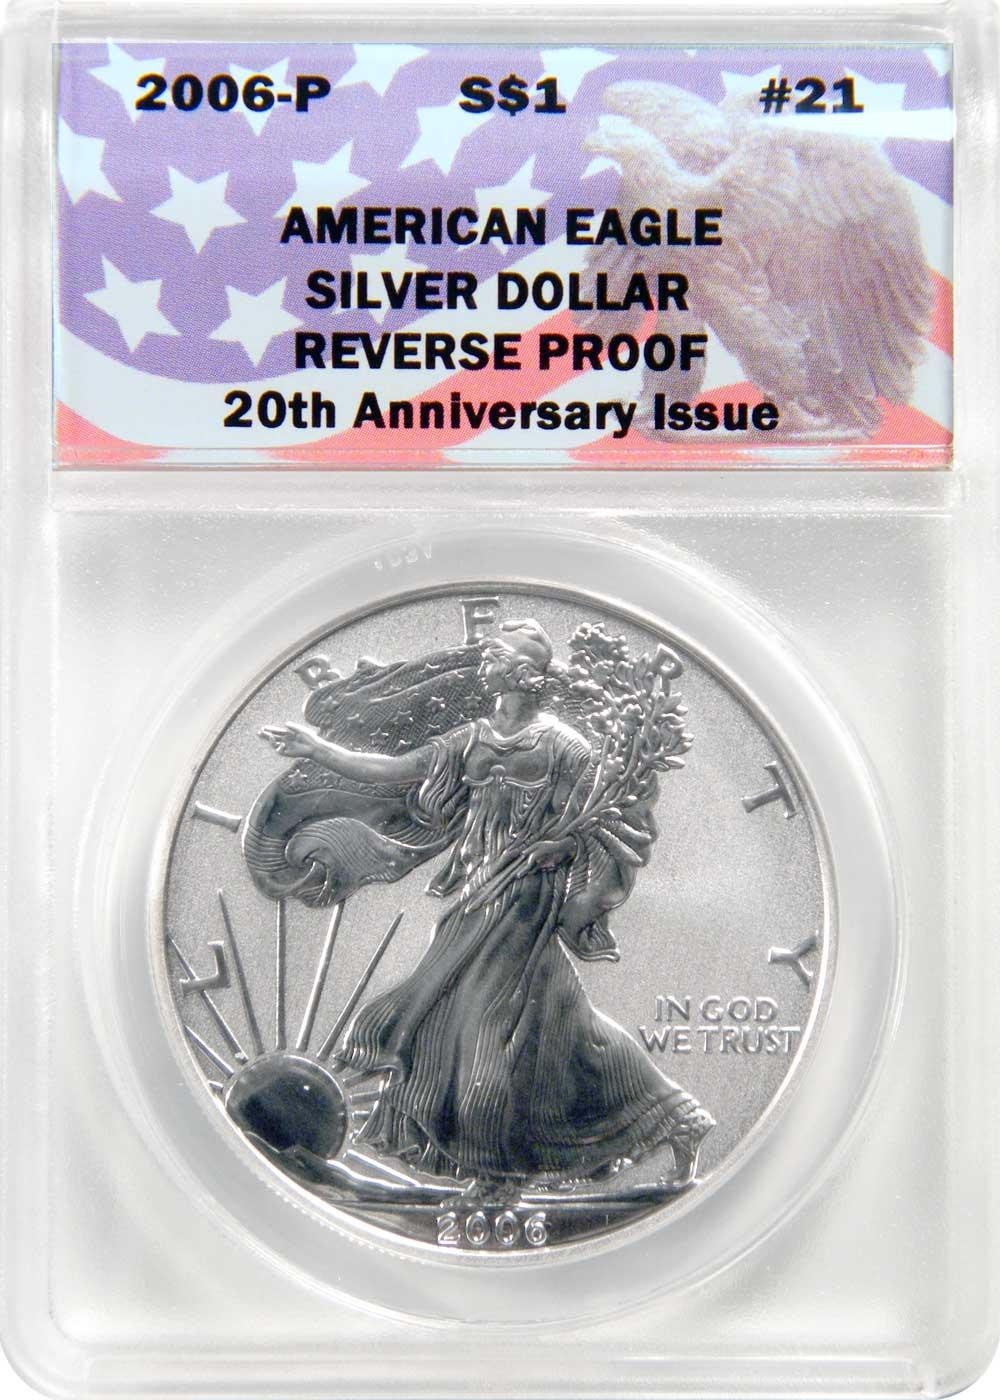 CollecTons Keepers #21: 2006-P Reverse Proof American Eagle Silver Dollar Certified in Exclusive ANACS Holder